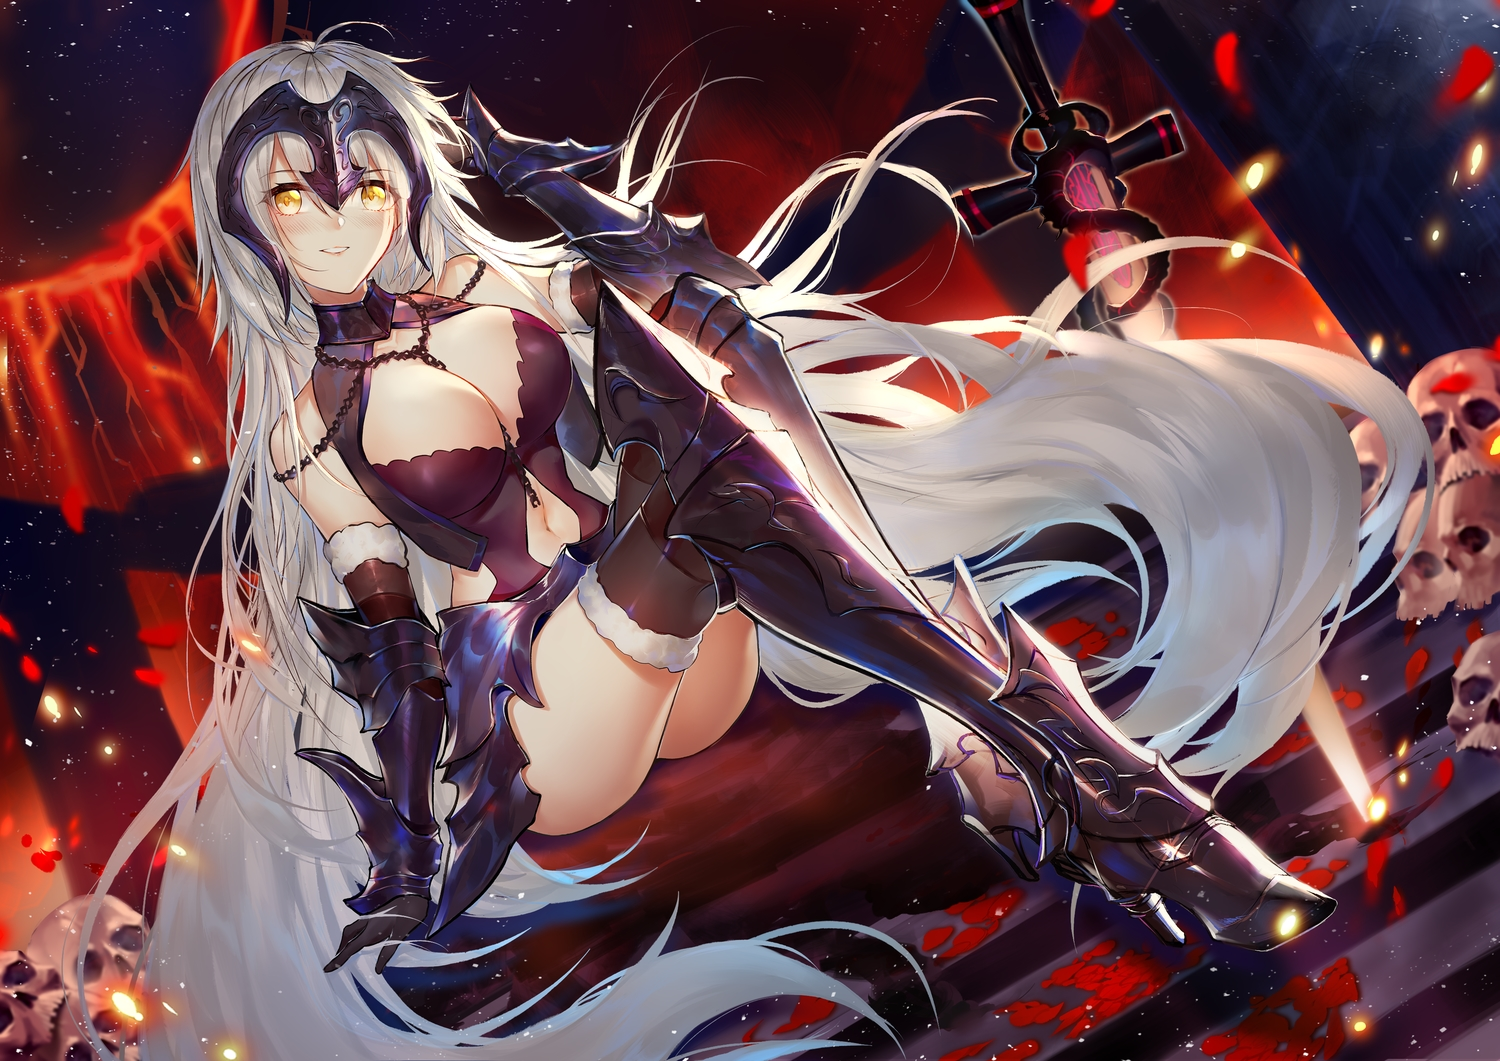 armor breasts chain cleavage fate/grand_order fate_(series) headdress horz jeanne_d'arc_alter jeanne_d'arc_(fate) long_hair navel skull sword thighhighs weapon white_hair yellow_eyes